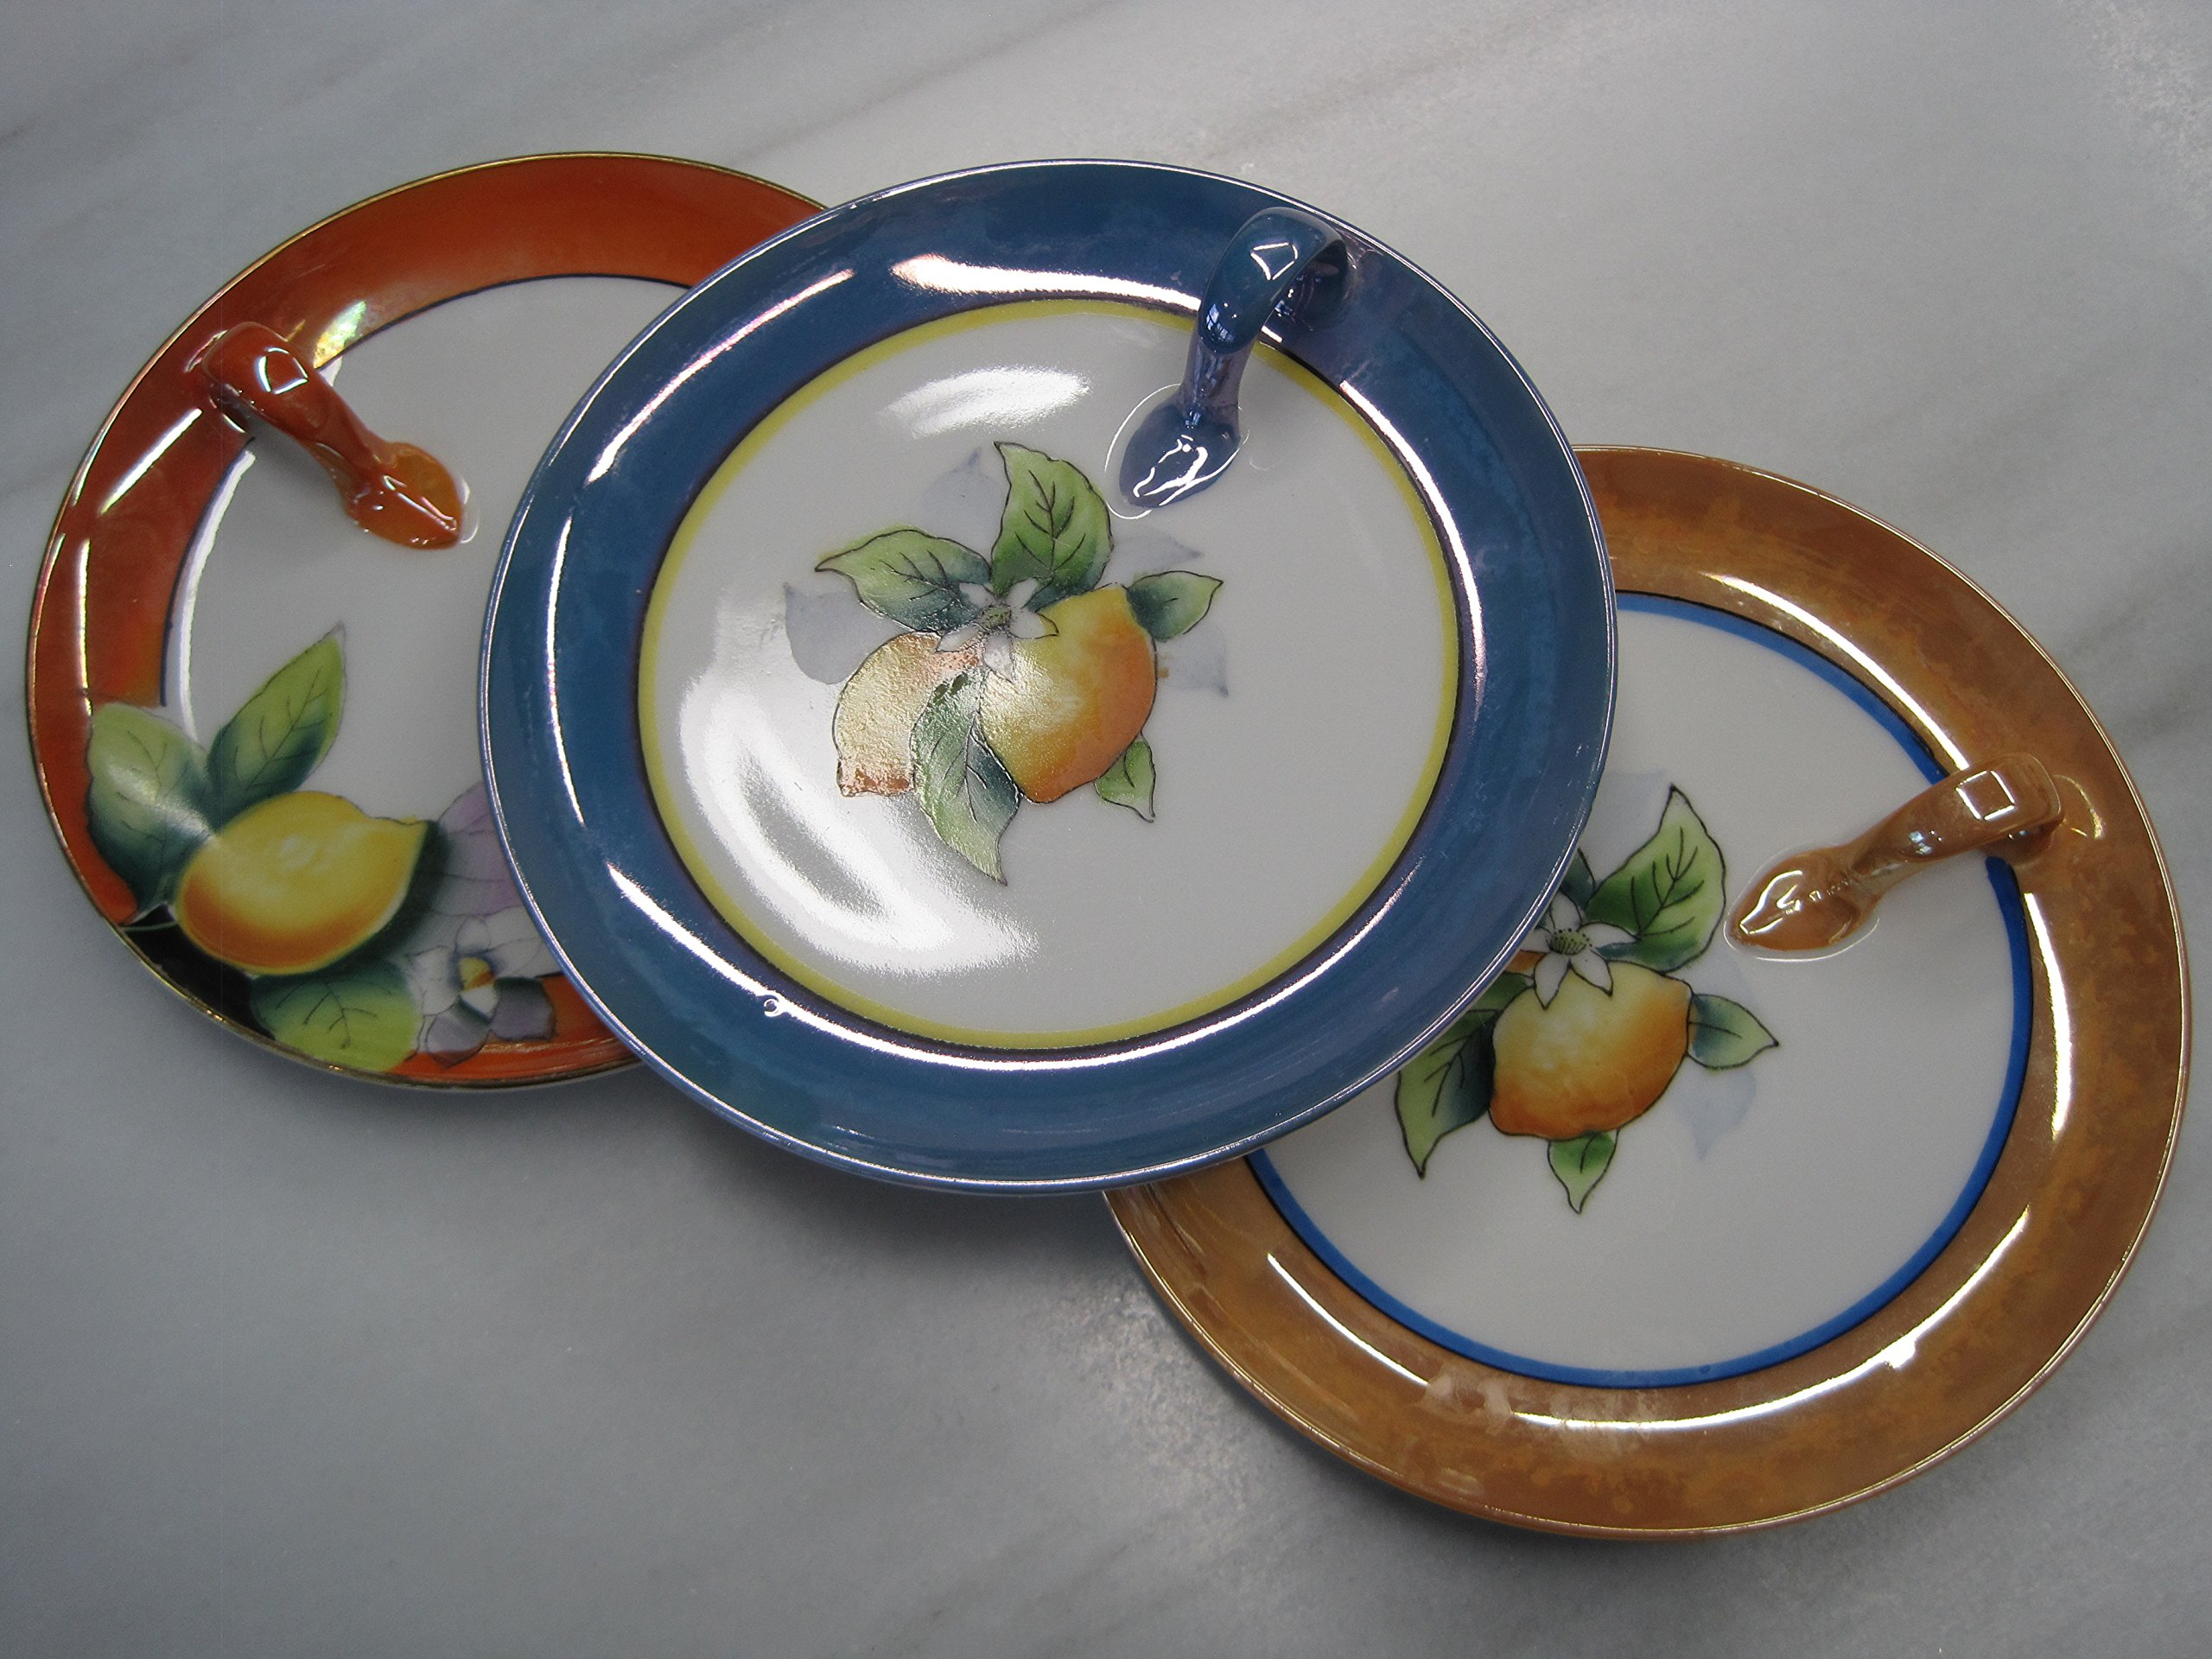 Noritake Porcelain Antique Cocktail Plates, Set of 3, 1920's, 5 1/2 Inches